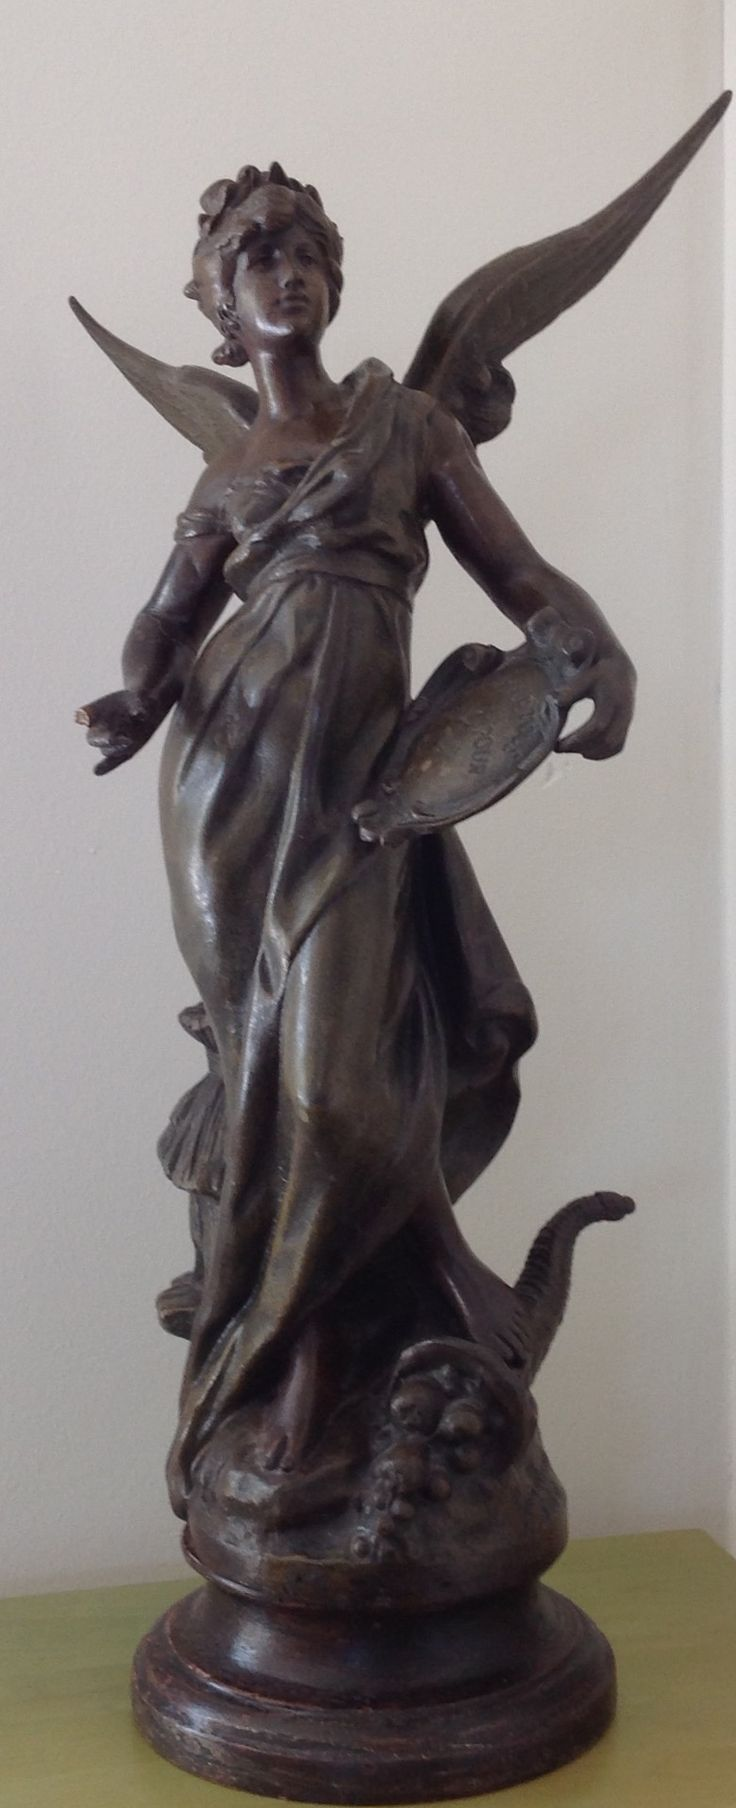 Statue of bronze by Moreau, winged woman